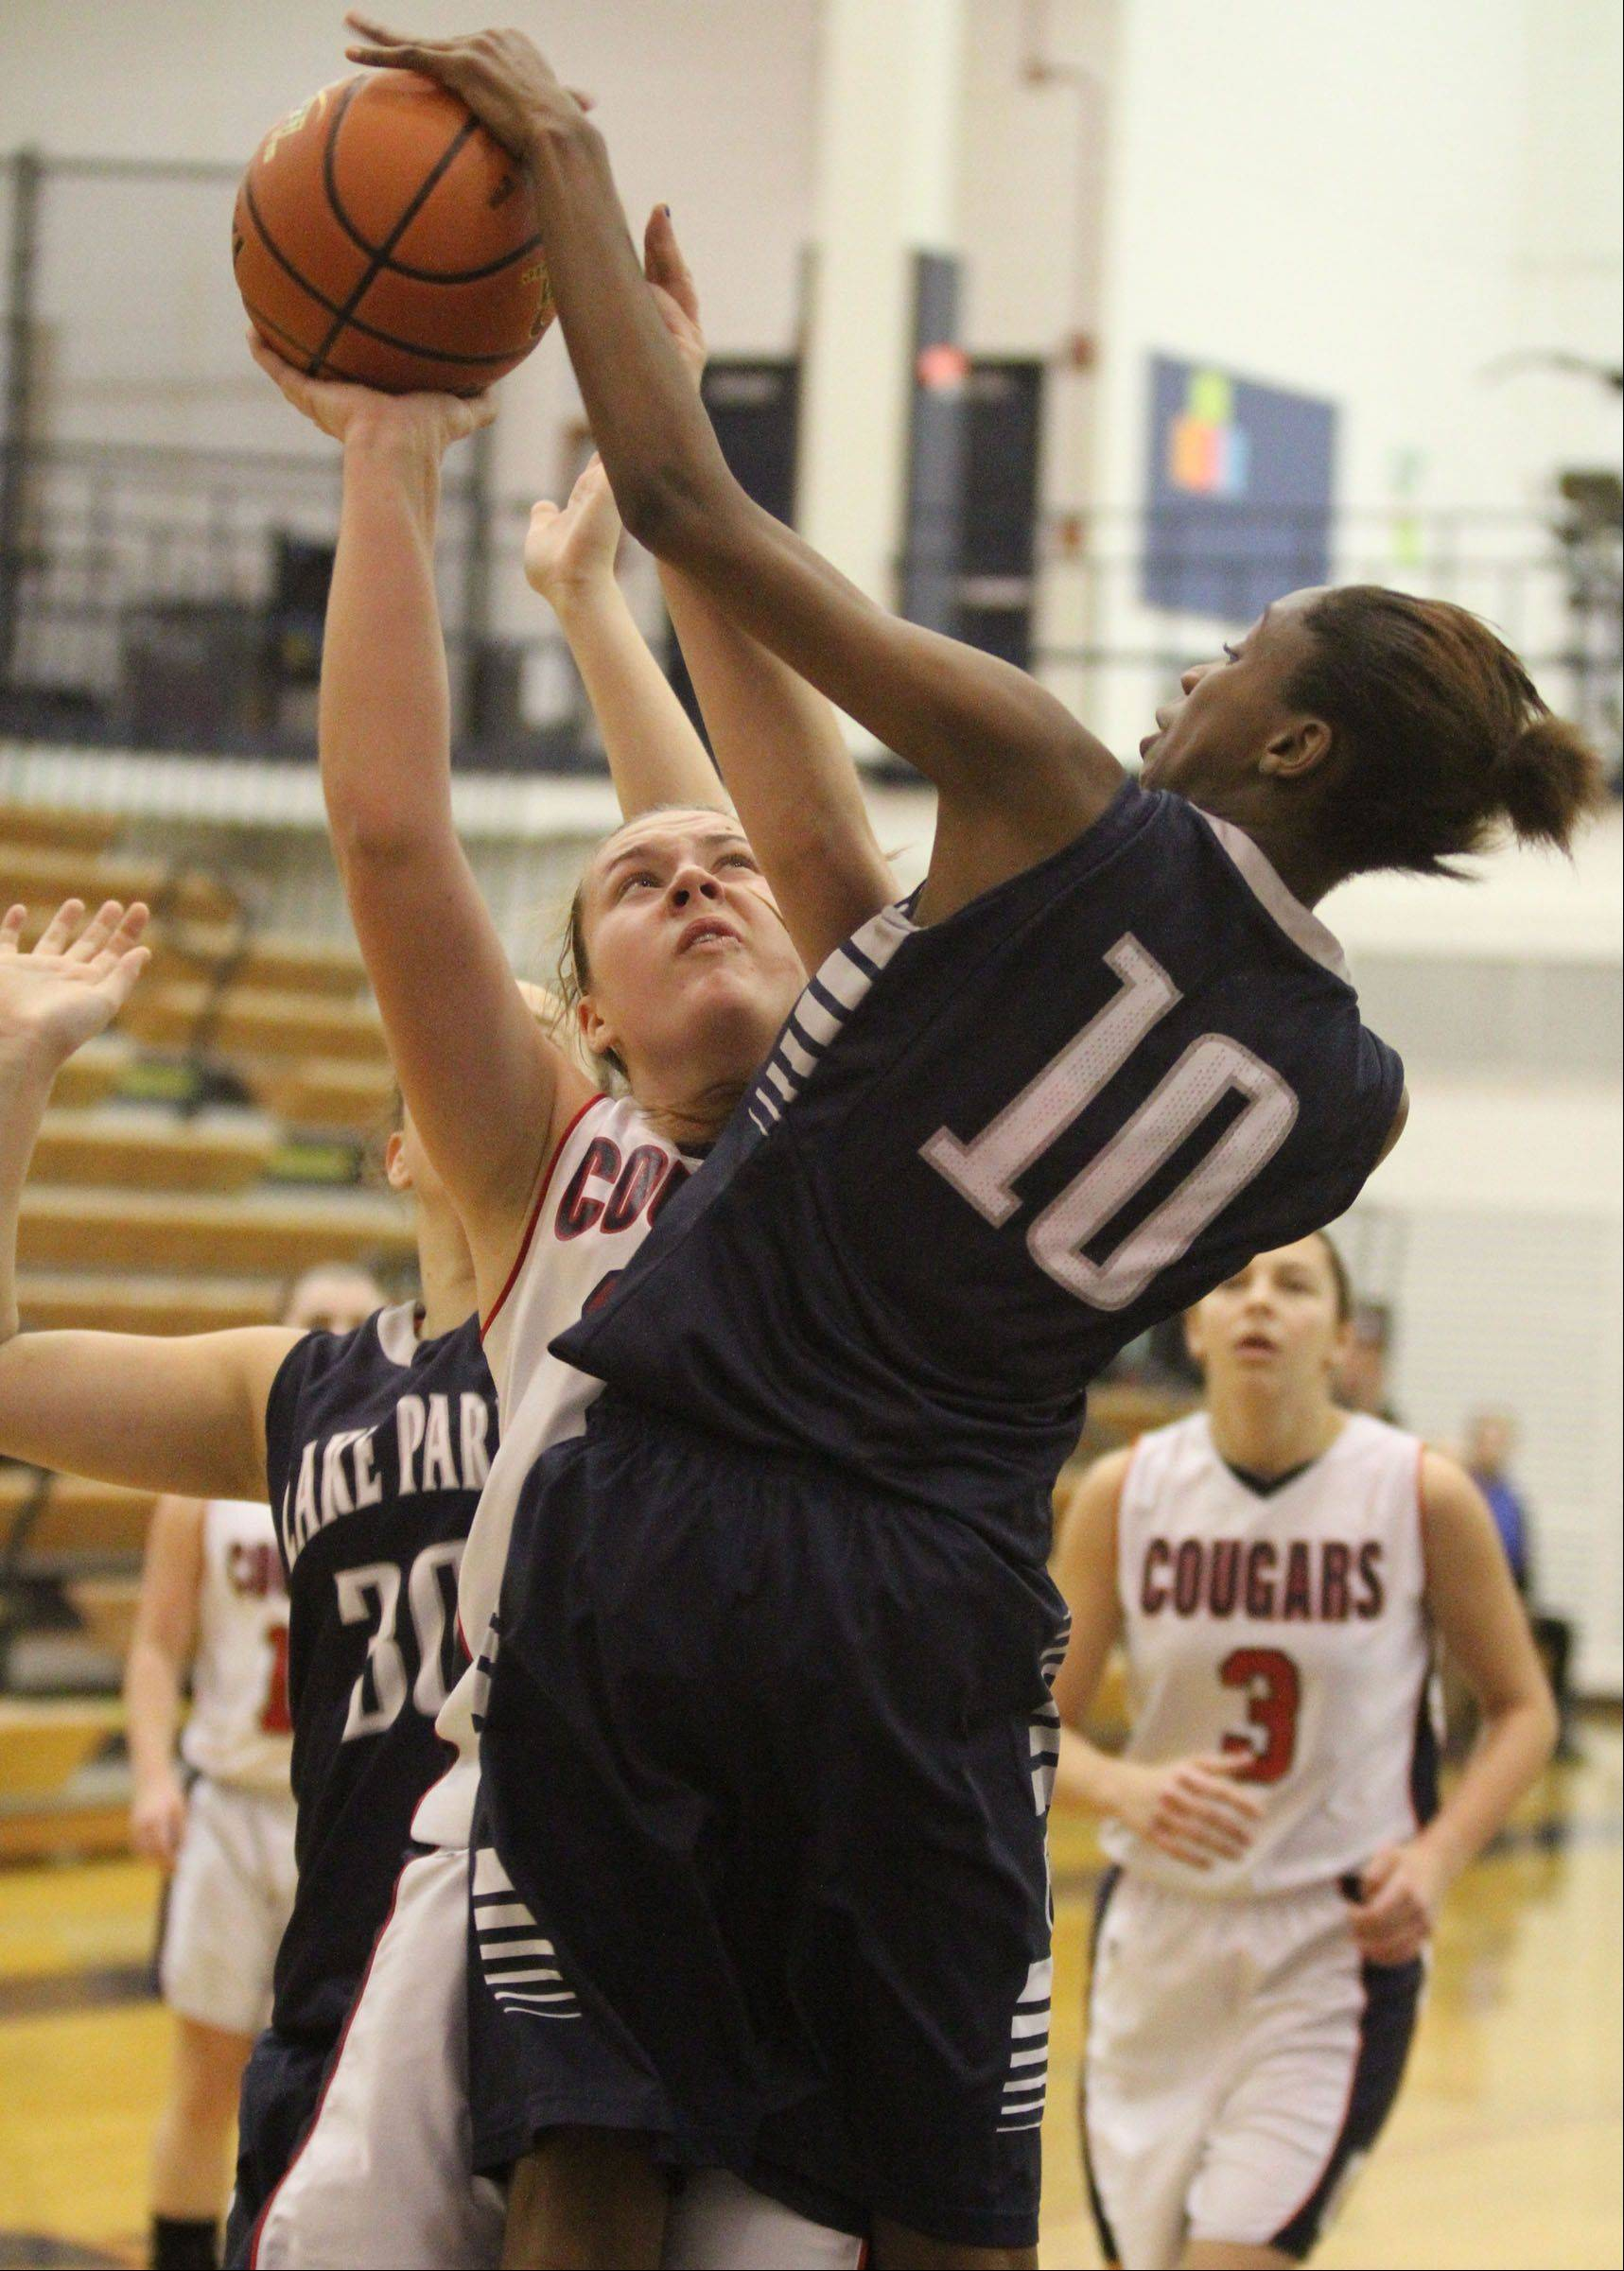 Images from the Lake Park vs. Conant girls basketball game on Saturday, Dec. 22 in Hoffman Estates.